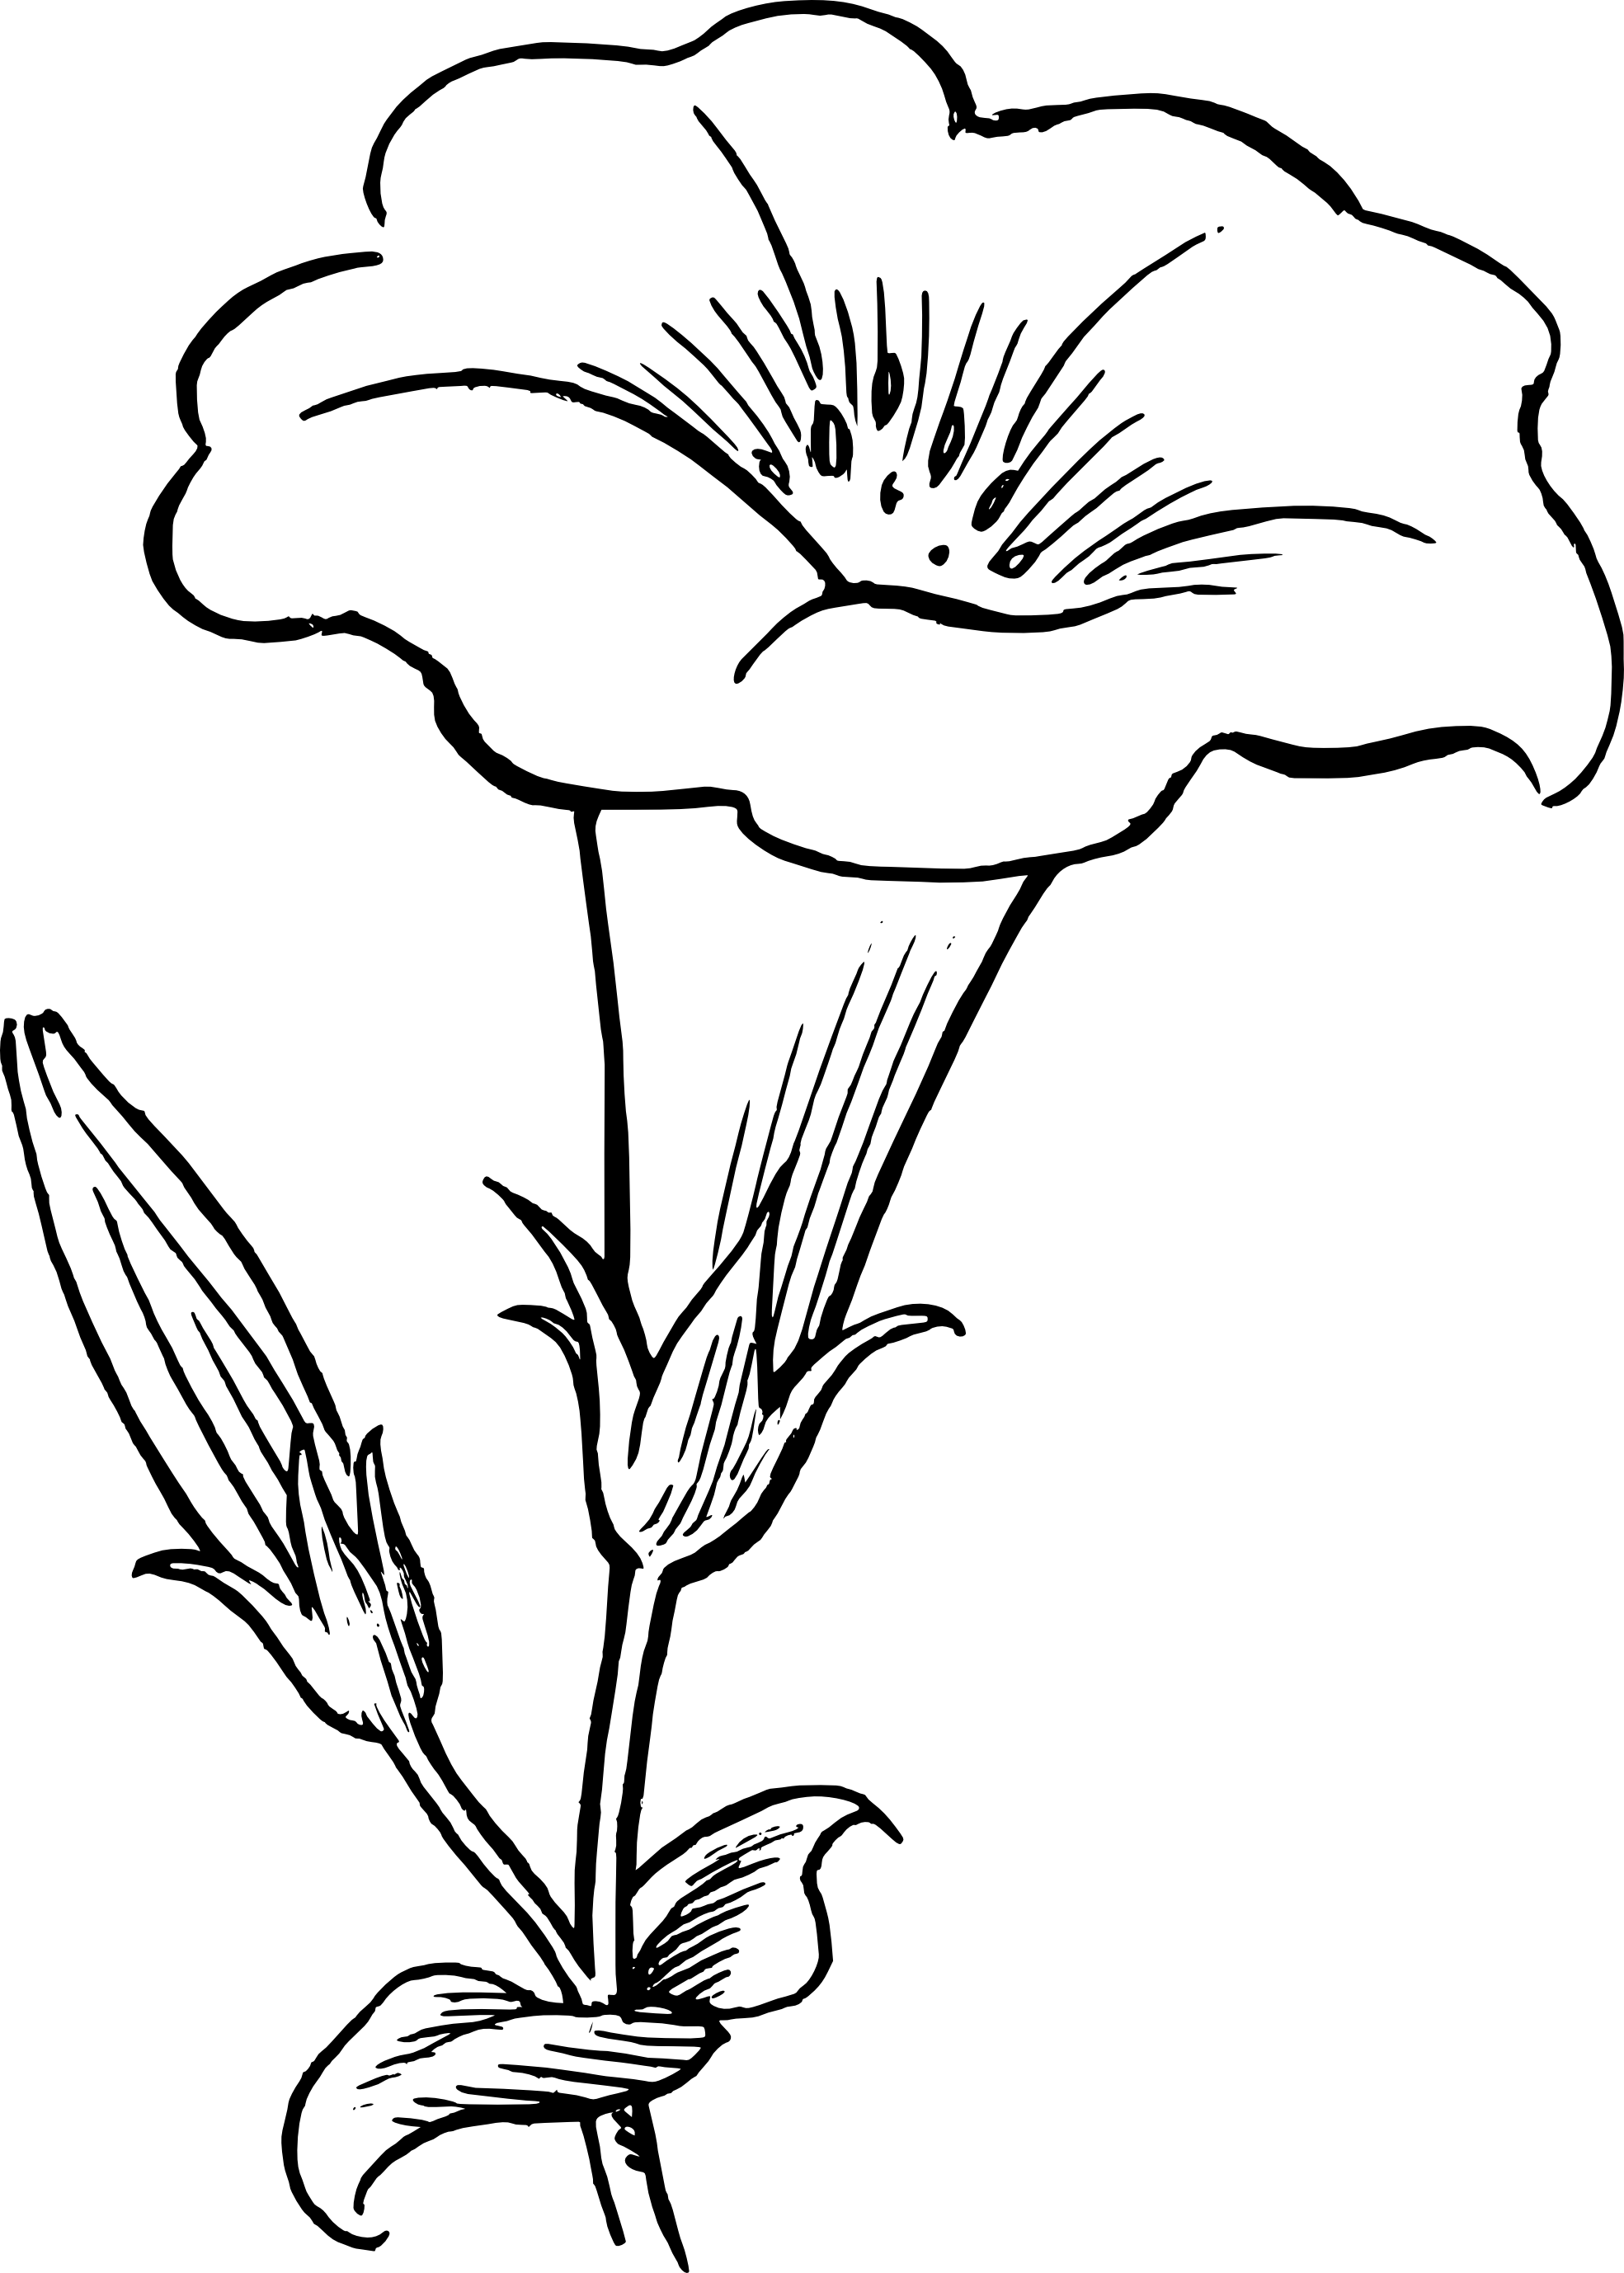 Line Drawing Of Flowers : Flower line drawings free clipart best